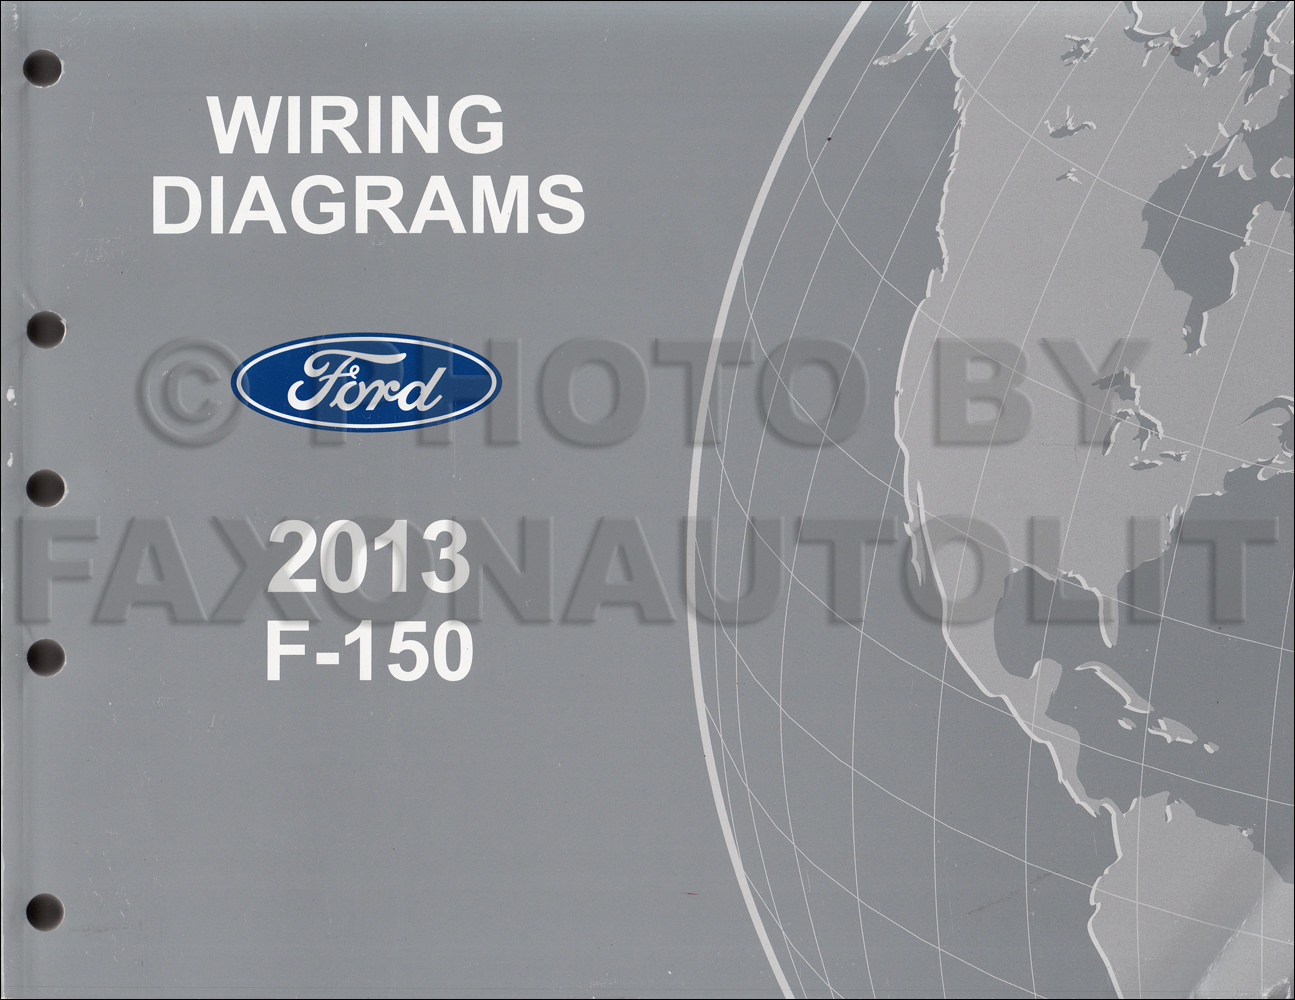 2013 F 150 Wiring Diagram Unlimited Diagrams Library 2014 Ford Speaker Manual Original Rh Faxonautoliterature Com F150 Headlight